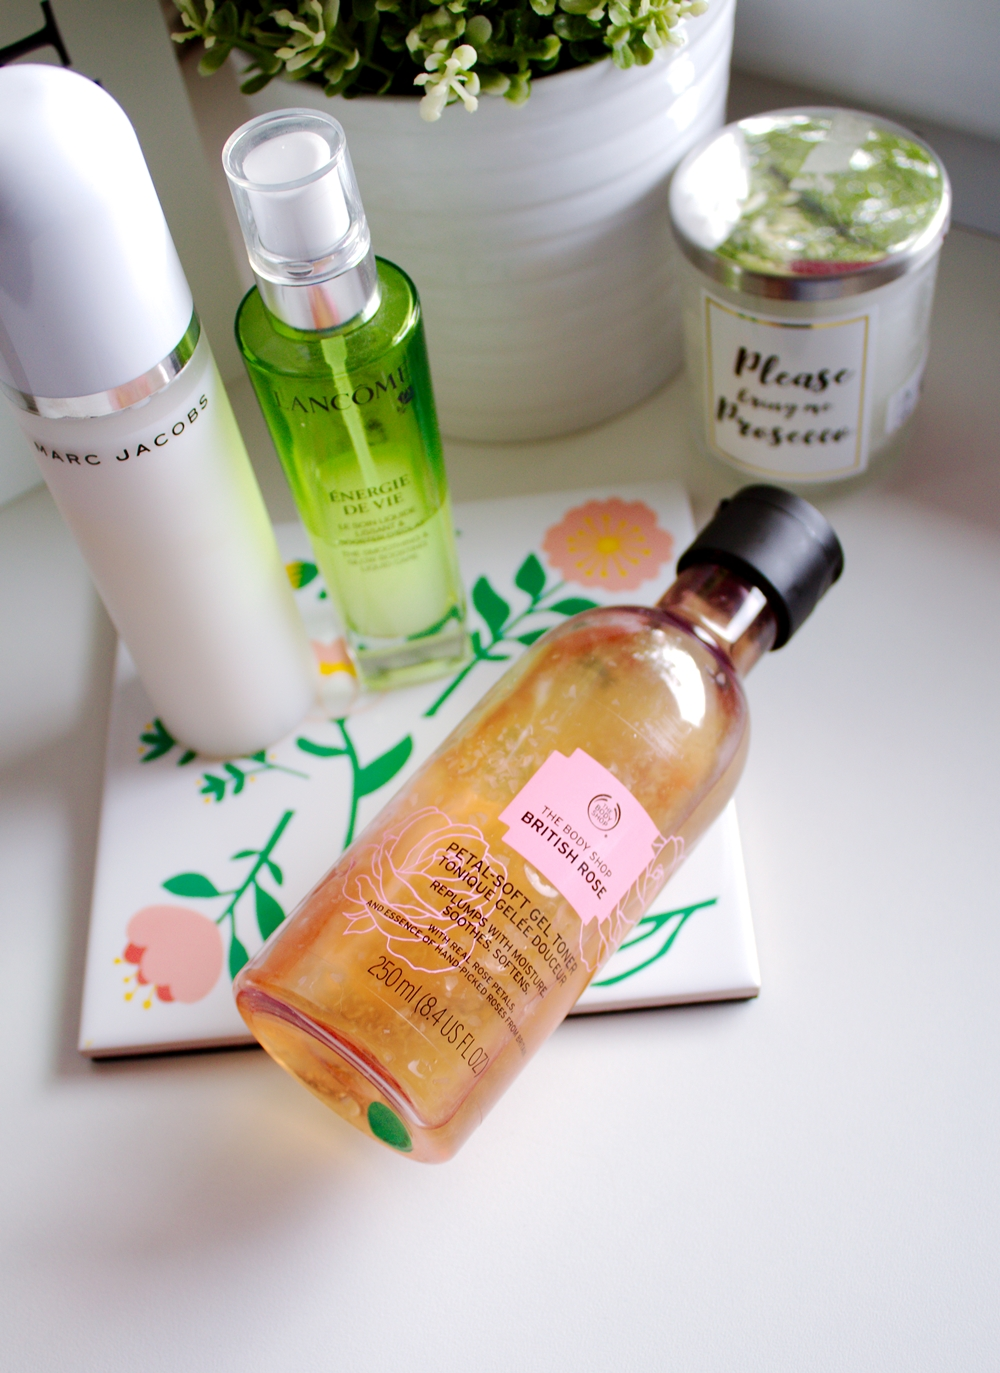 3x Nie | The Body Shop, Lancome i Marc Jacobs